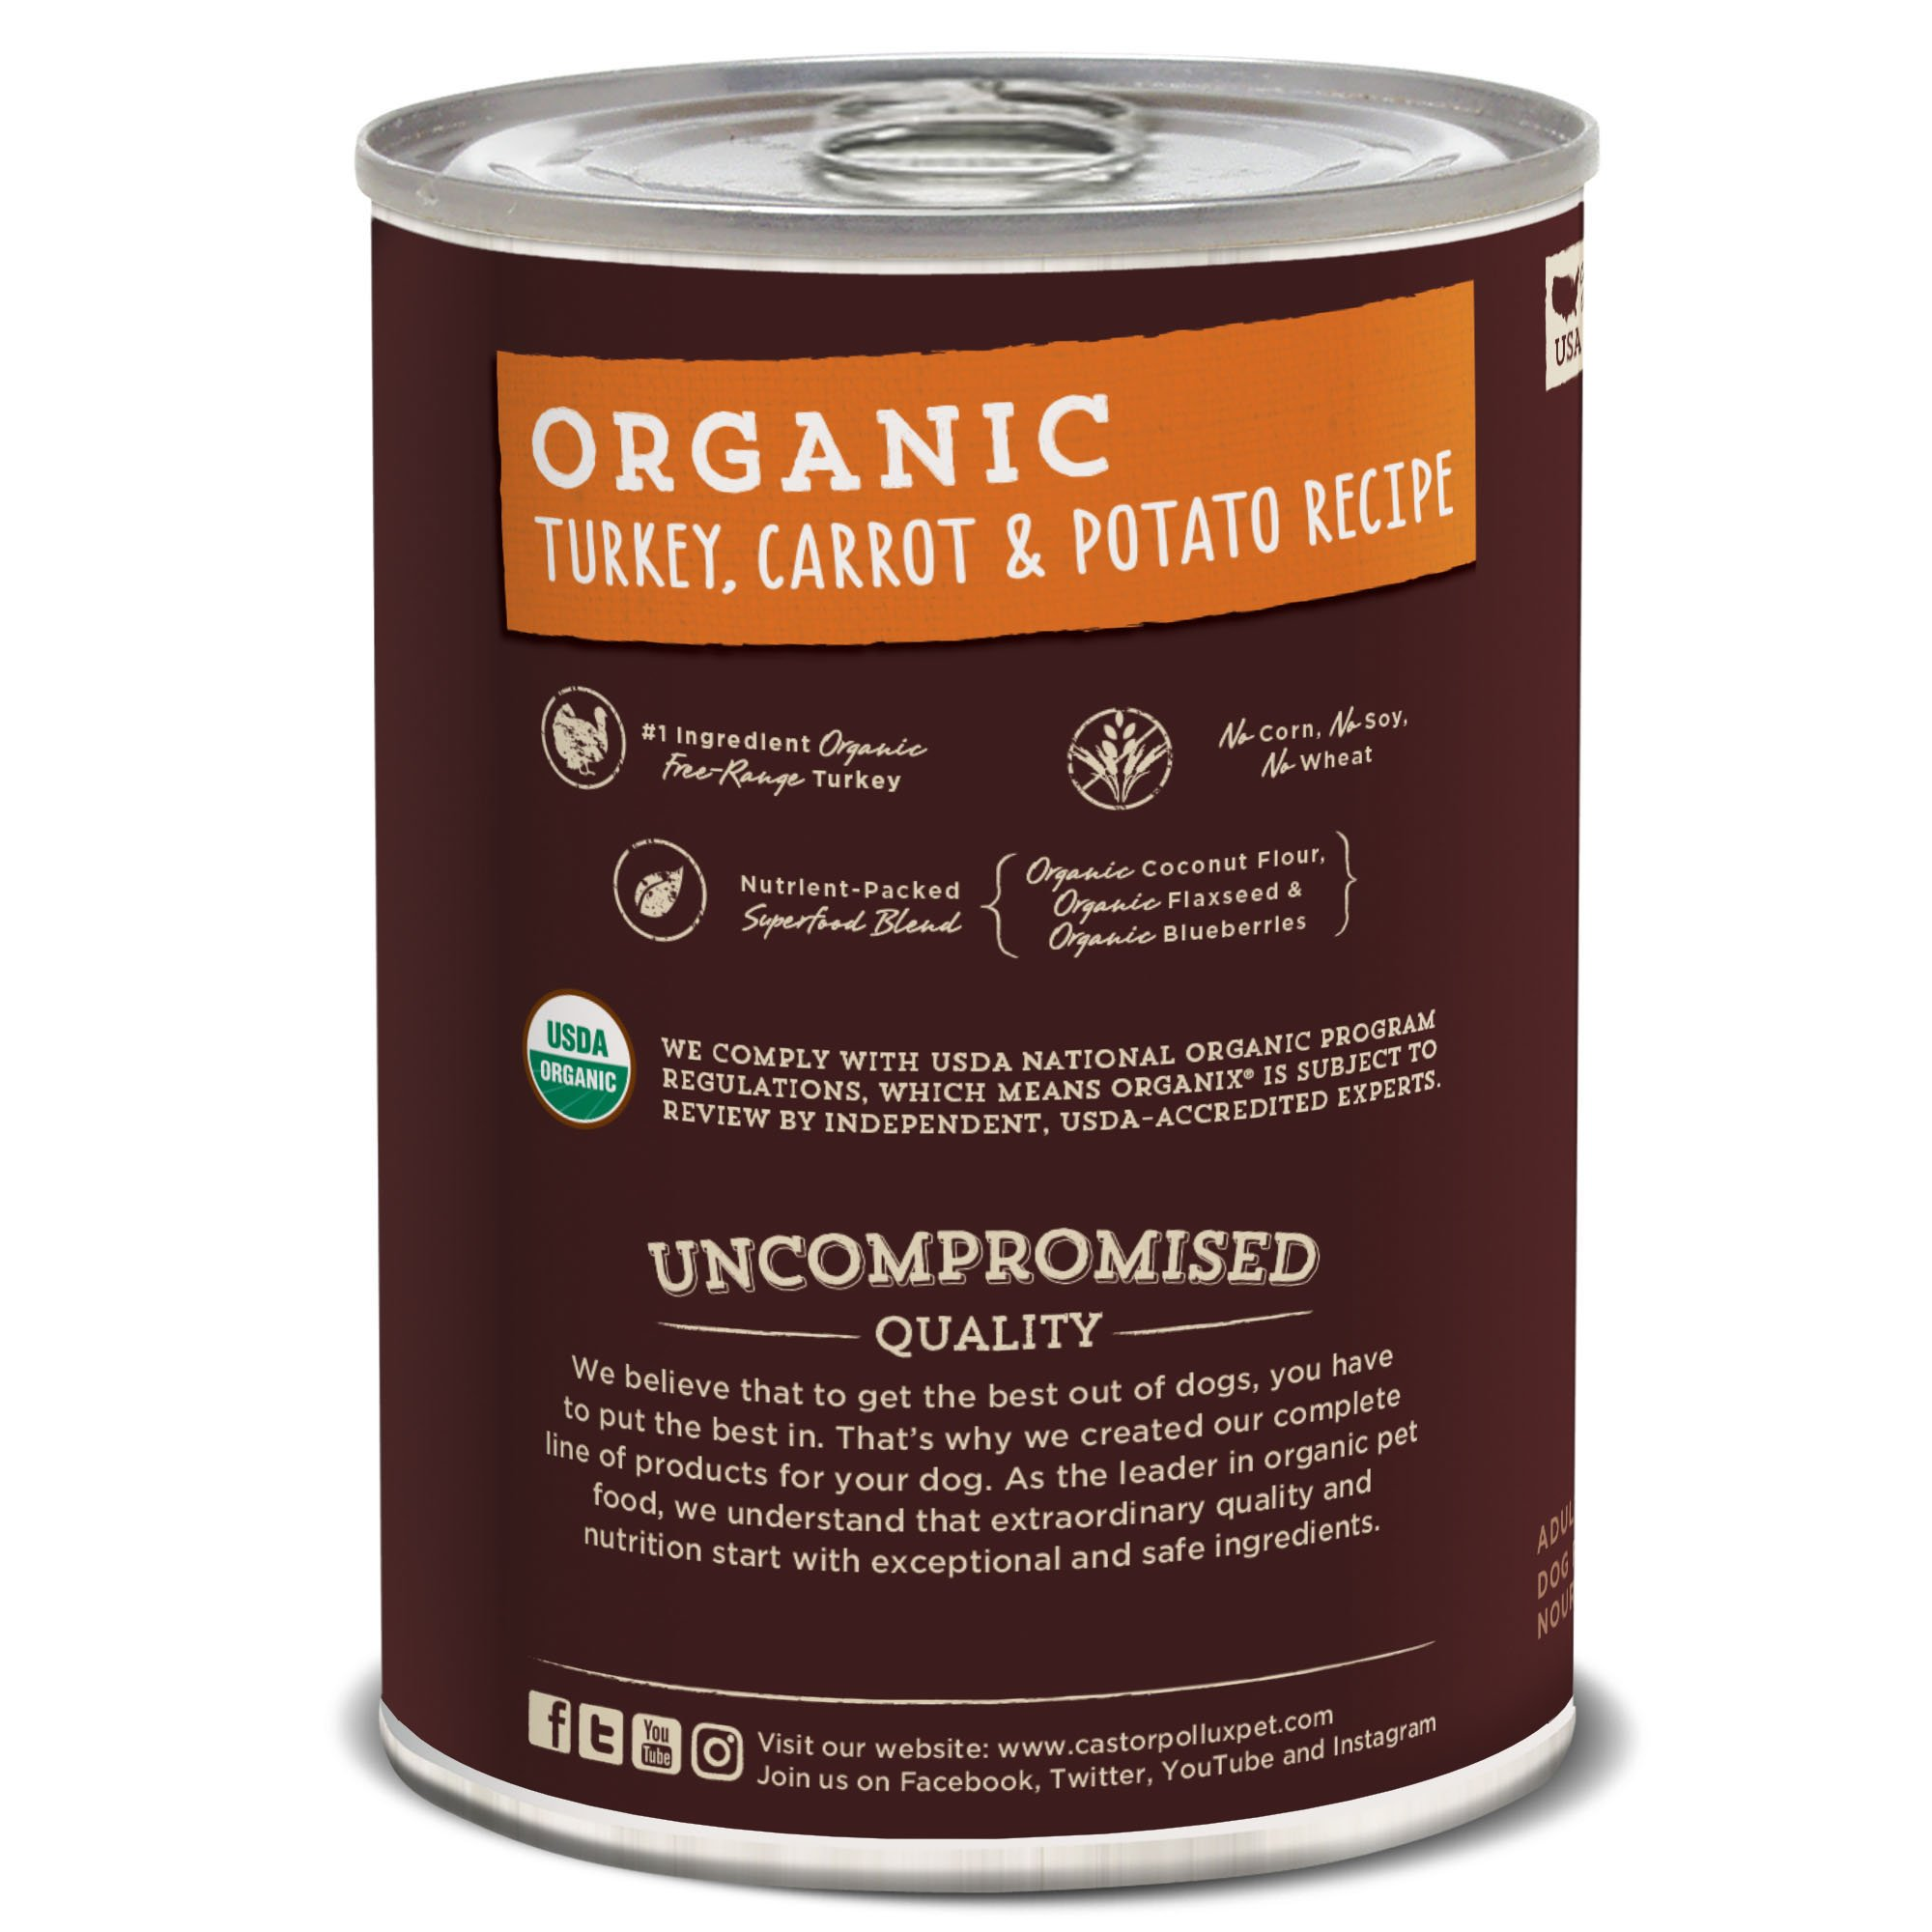 Castor & Pollux Organix Organic Turkey, Carrot & Potato Recipe, 12.7 oz, Case of 12 Cans by Castor & Pollux (Image #2)